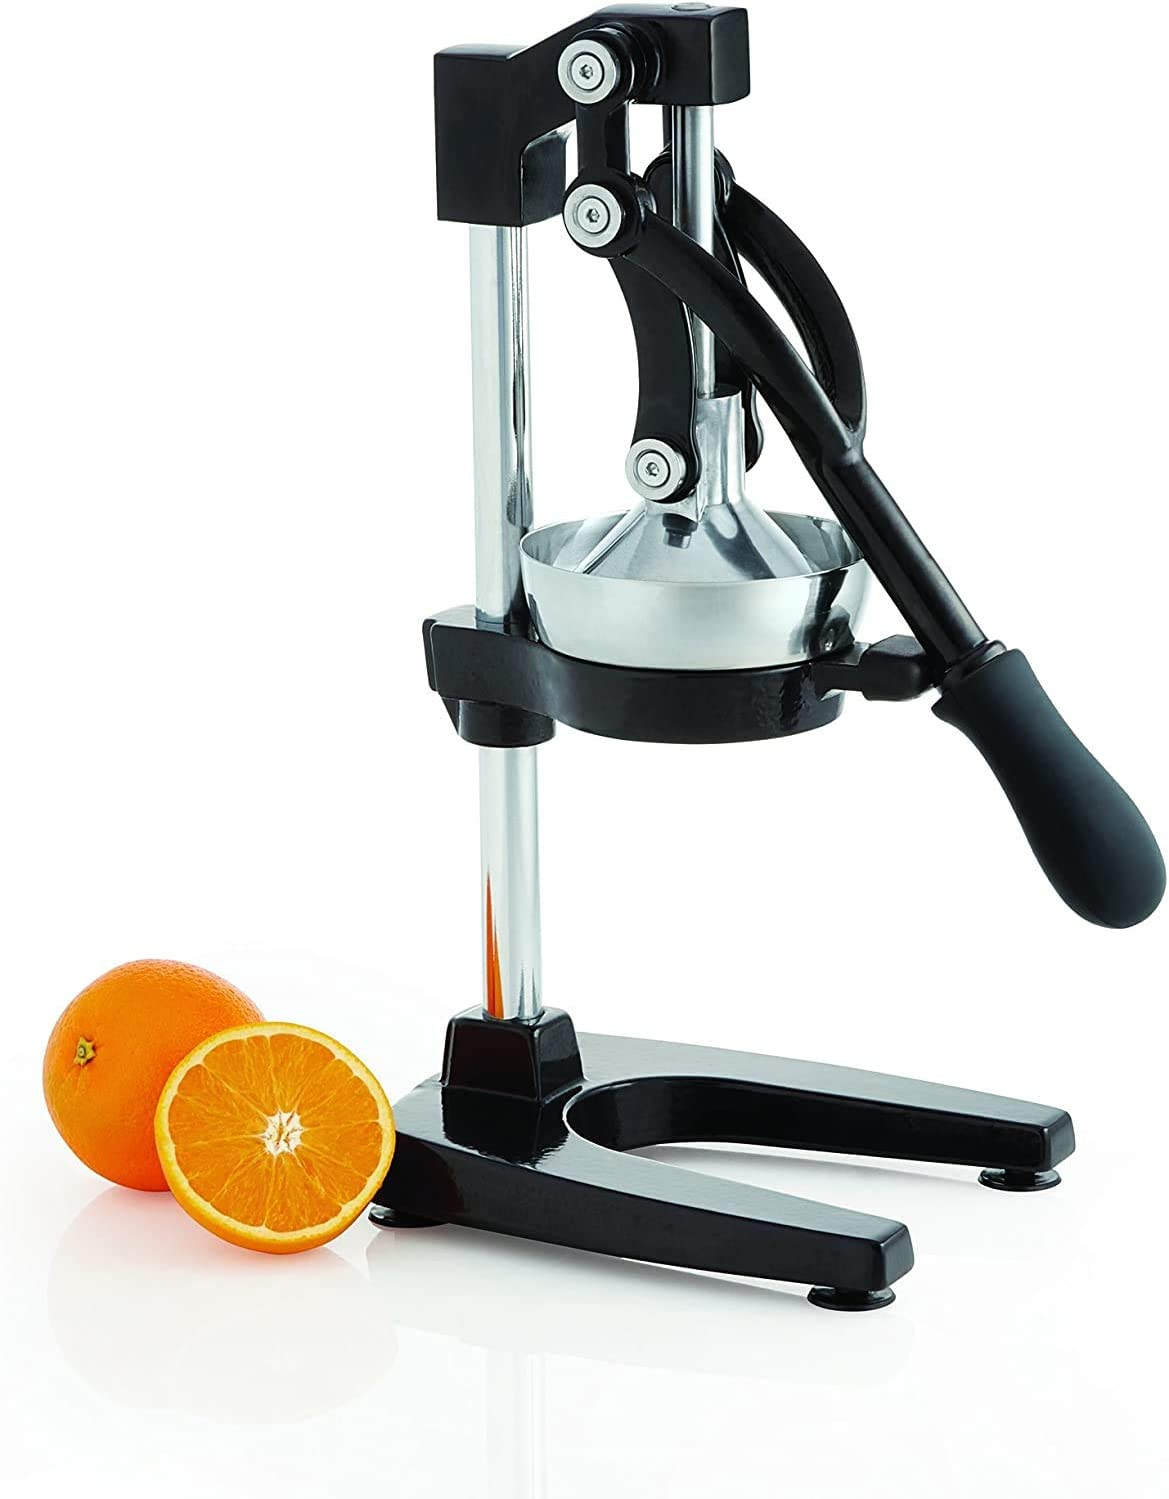 Large Citrus Juicer - Commercial Grade Press Orange, Grapefruit and Lemon Press Juicing - Extracts Maximum Juice - Heavy Duty Cast Iron Base and Handle,Black